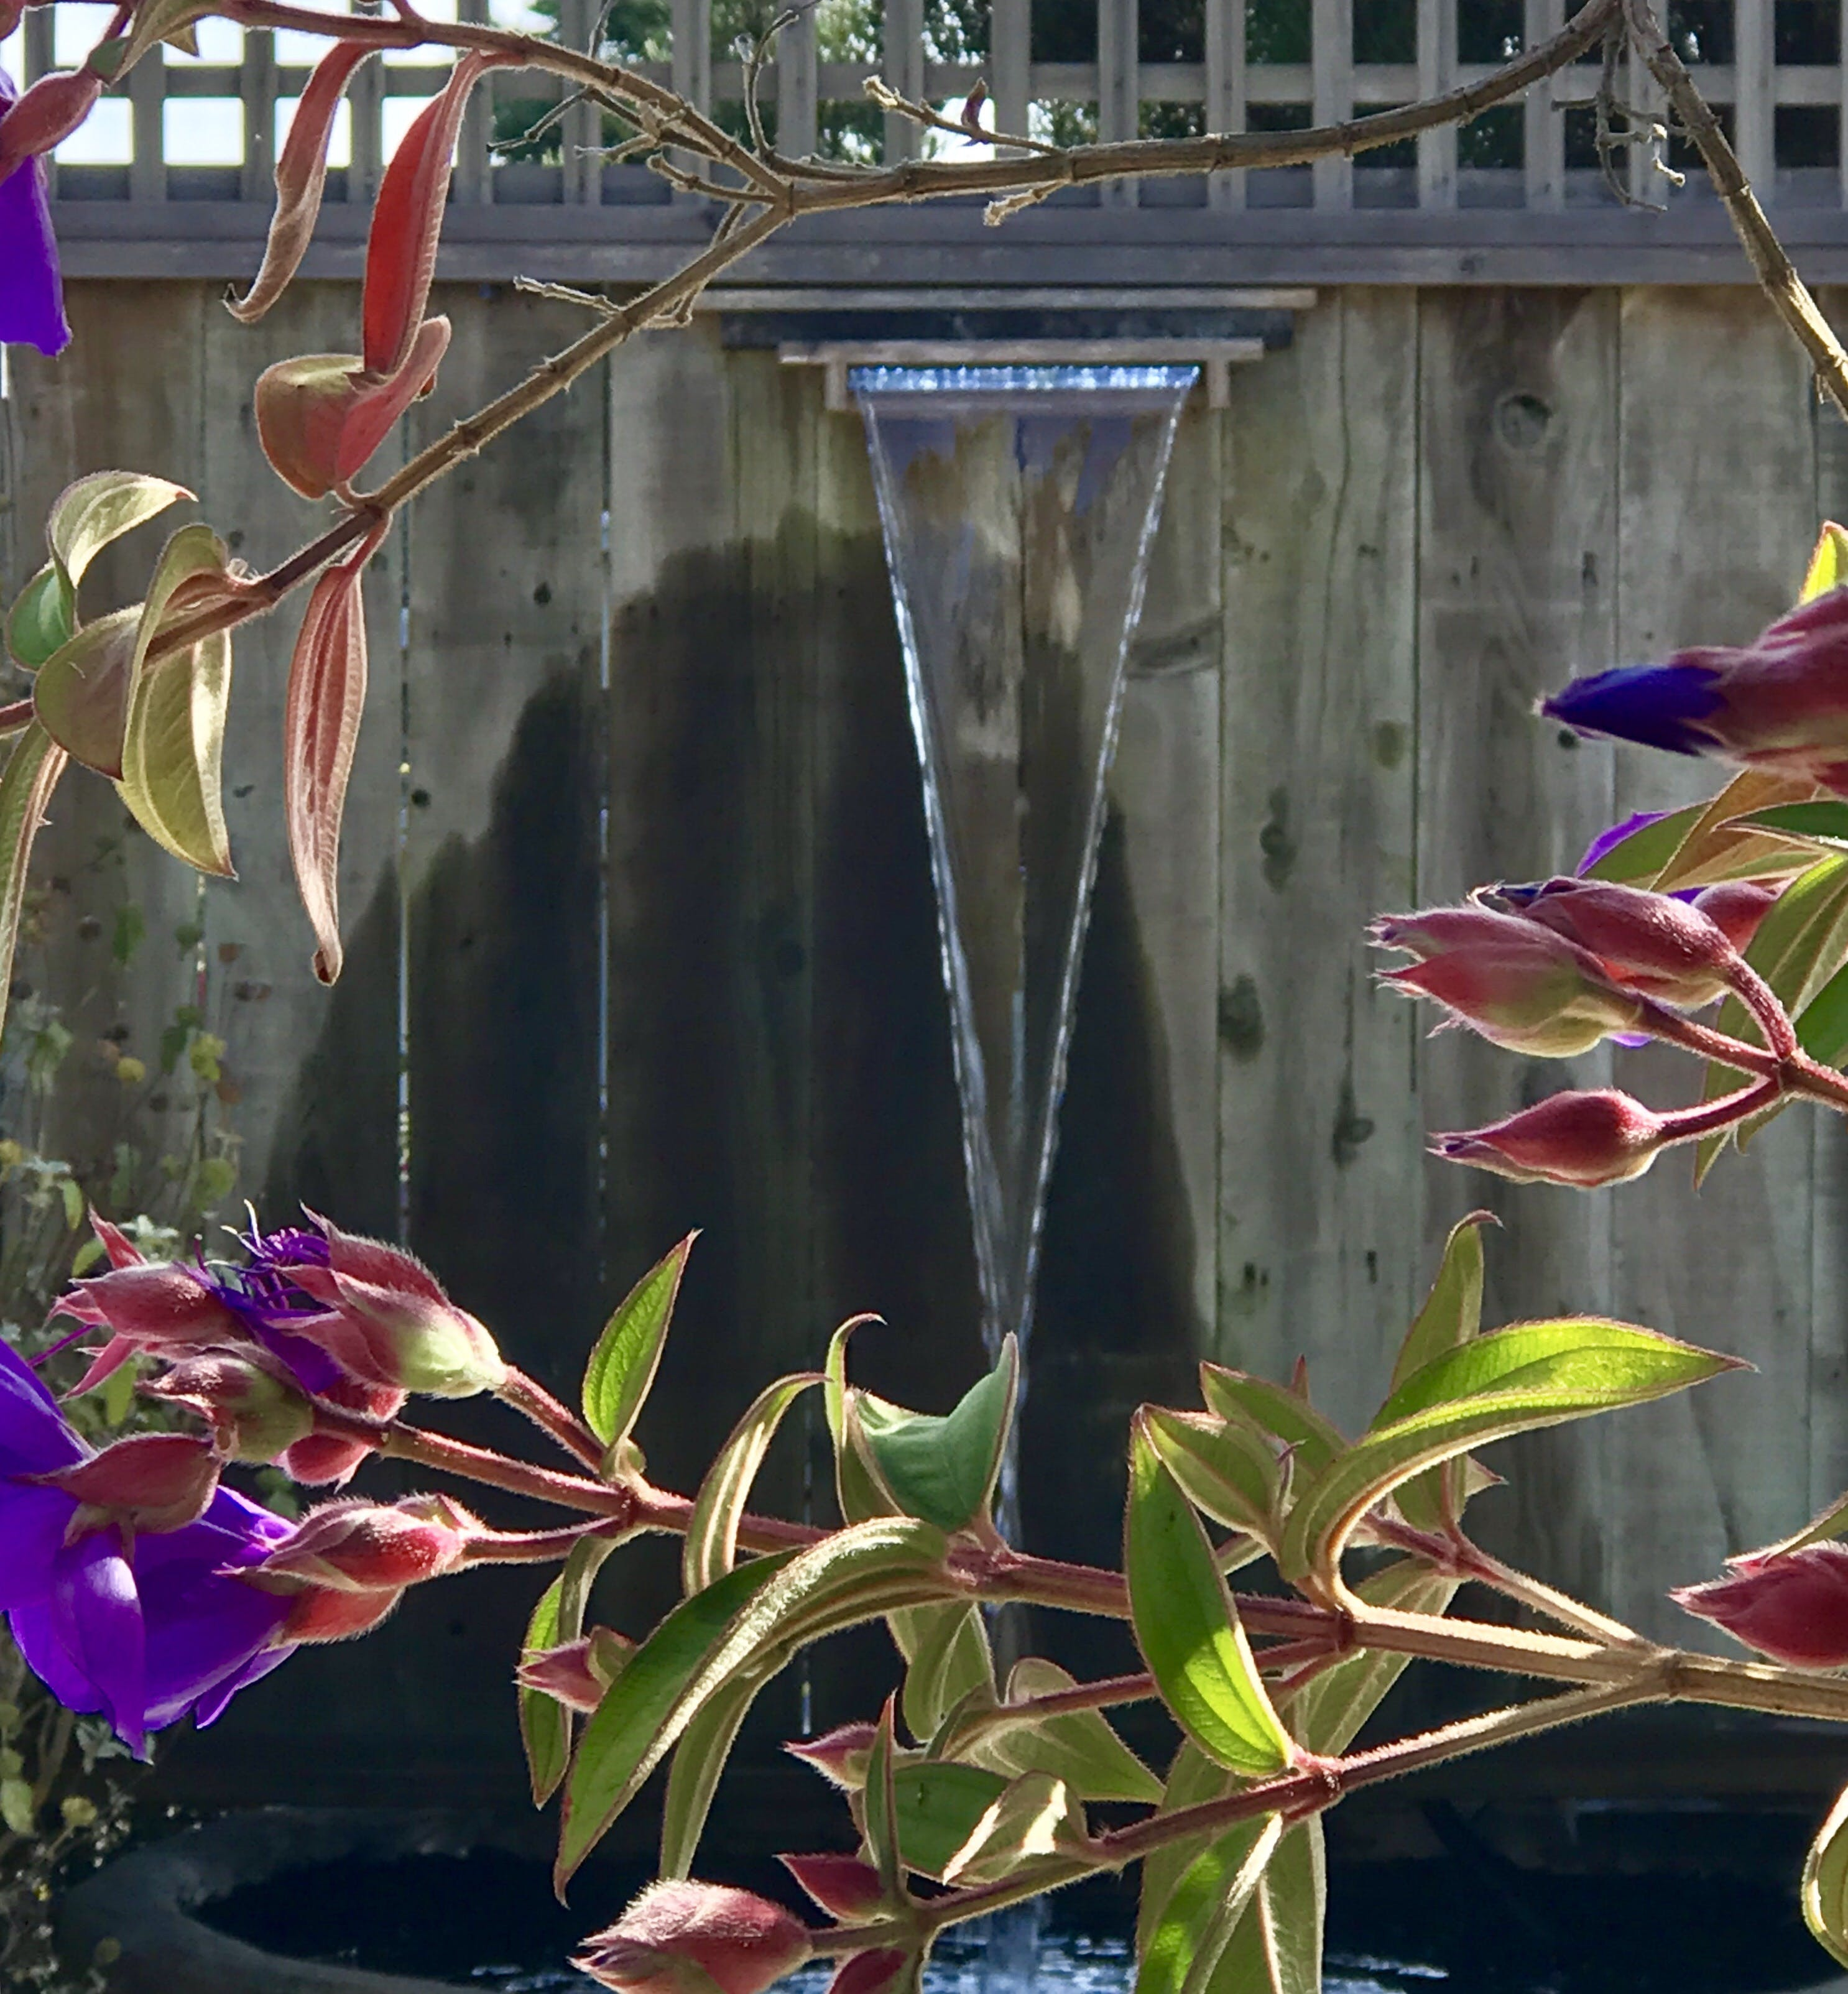 waterfall, purple flowers, koi fountain, bodega bay inn